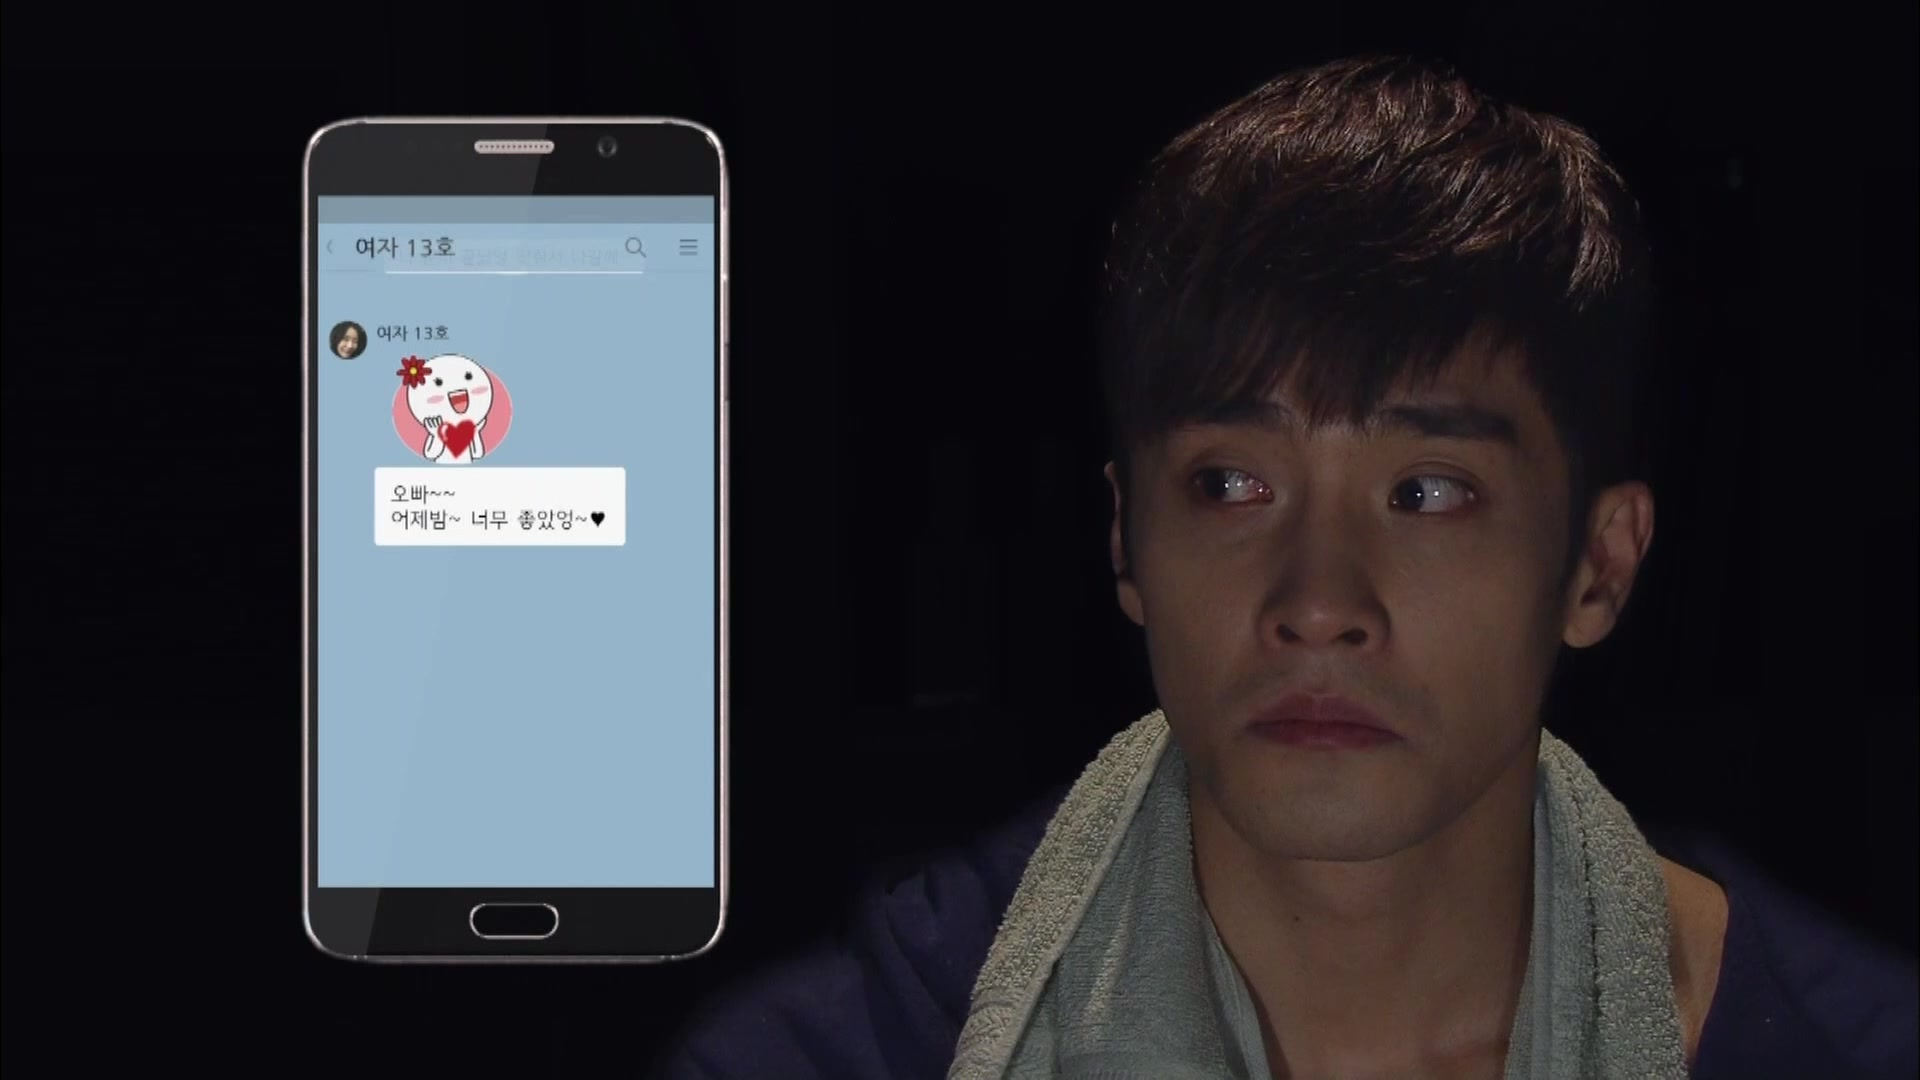 Sang Min Compromising Photos on Lost Phone!: Five Children